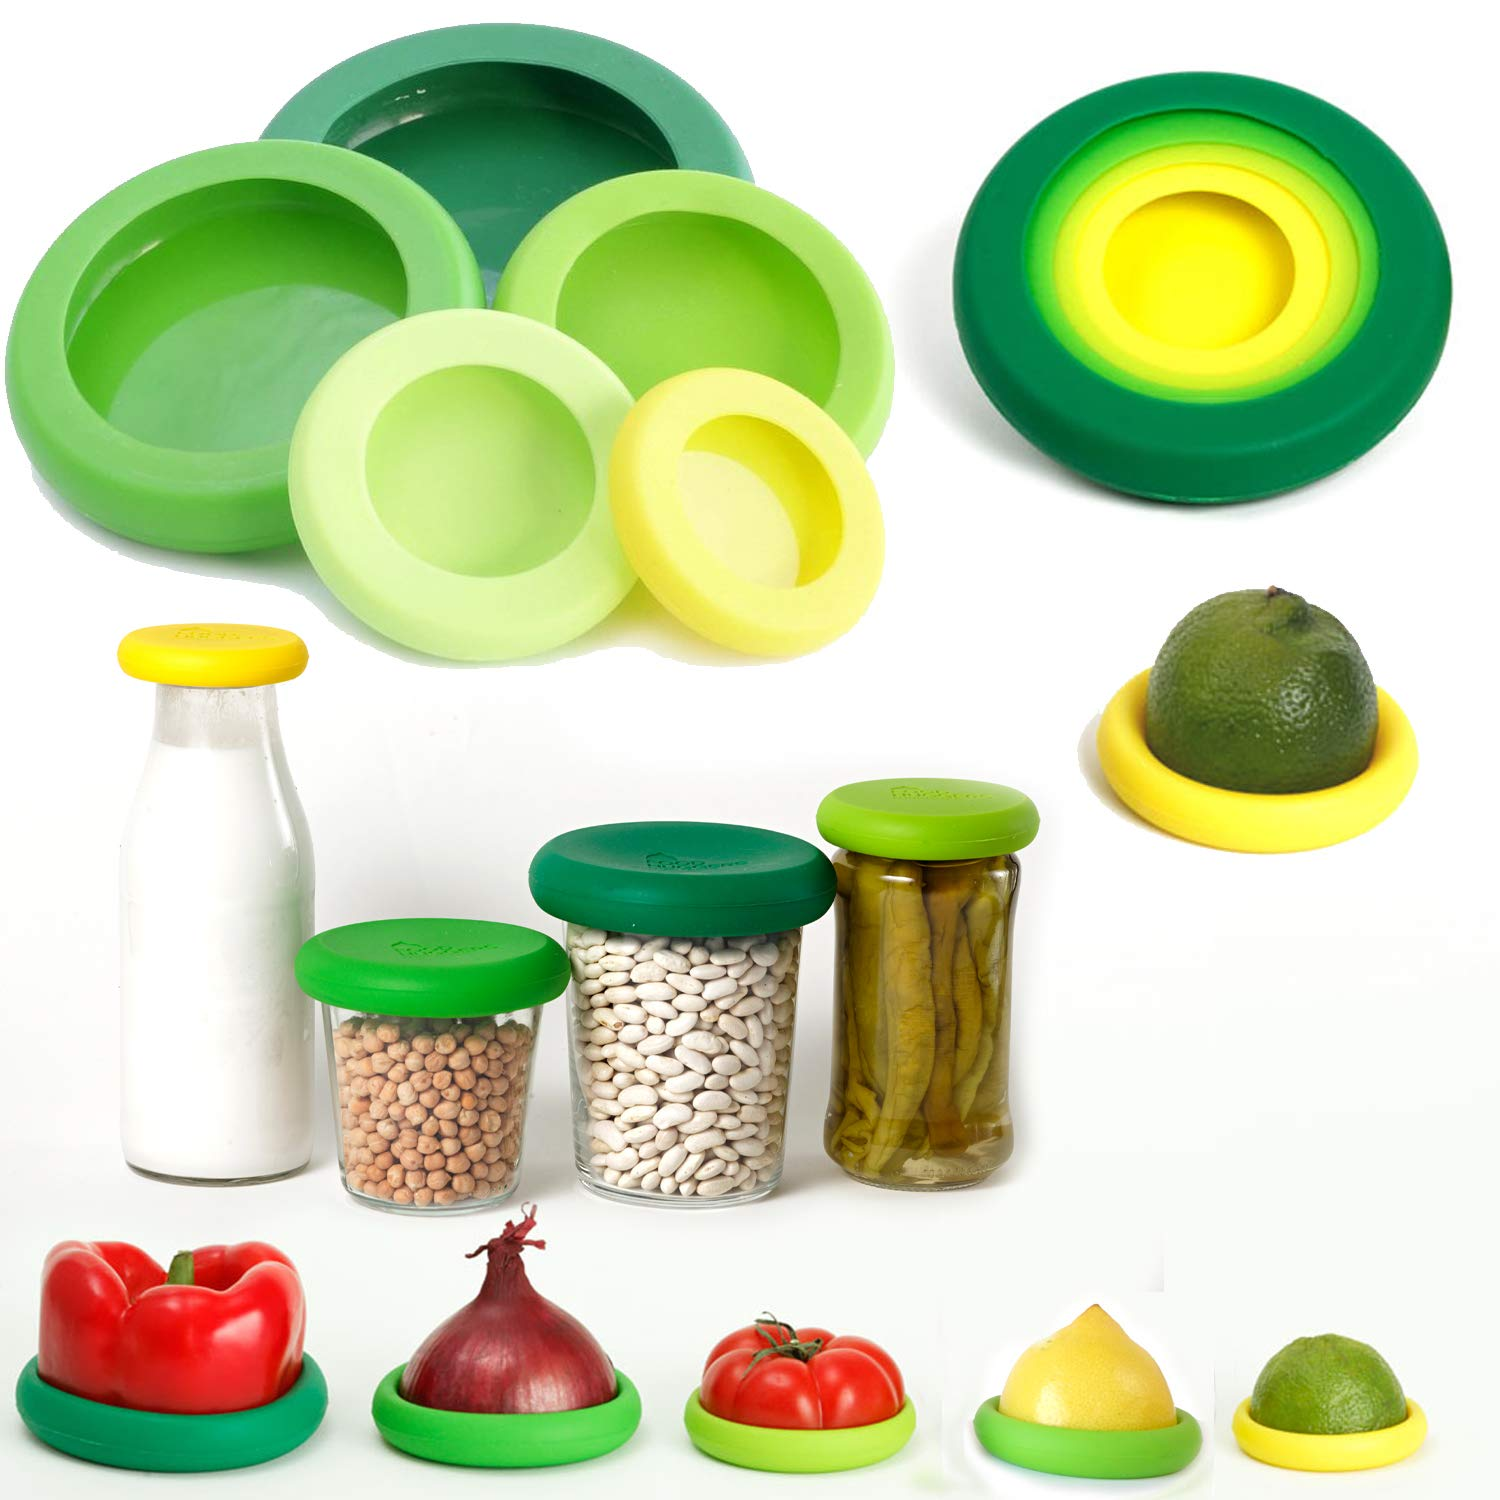 Food Huggers Reusable Silicone Covers Fruit Vegetable Jars Bottles Tins Cans Savers Storage Holder Keep Fresh Flexible Sleeve Lid (Set of 5 Fresh Greens )